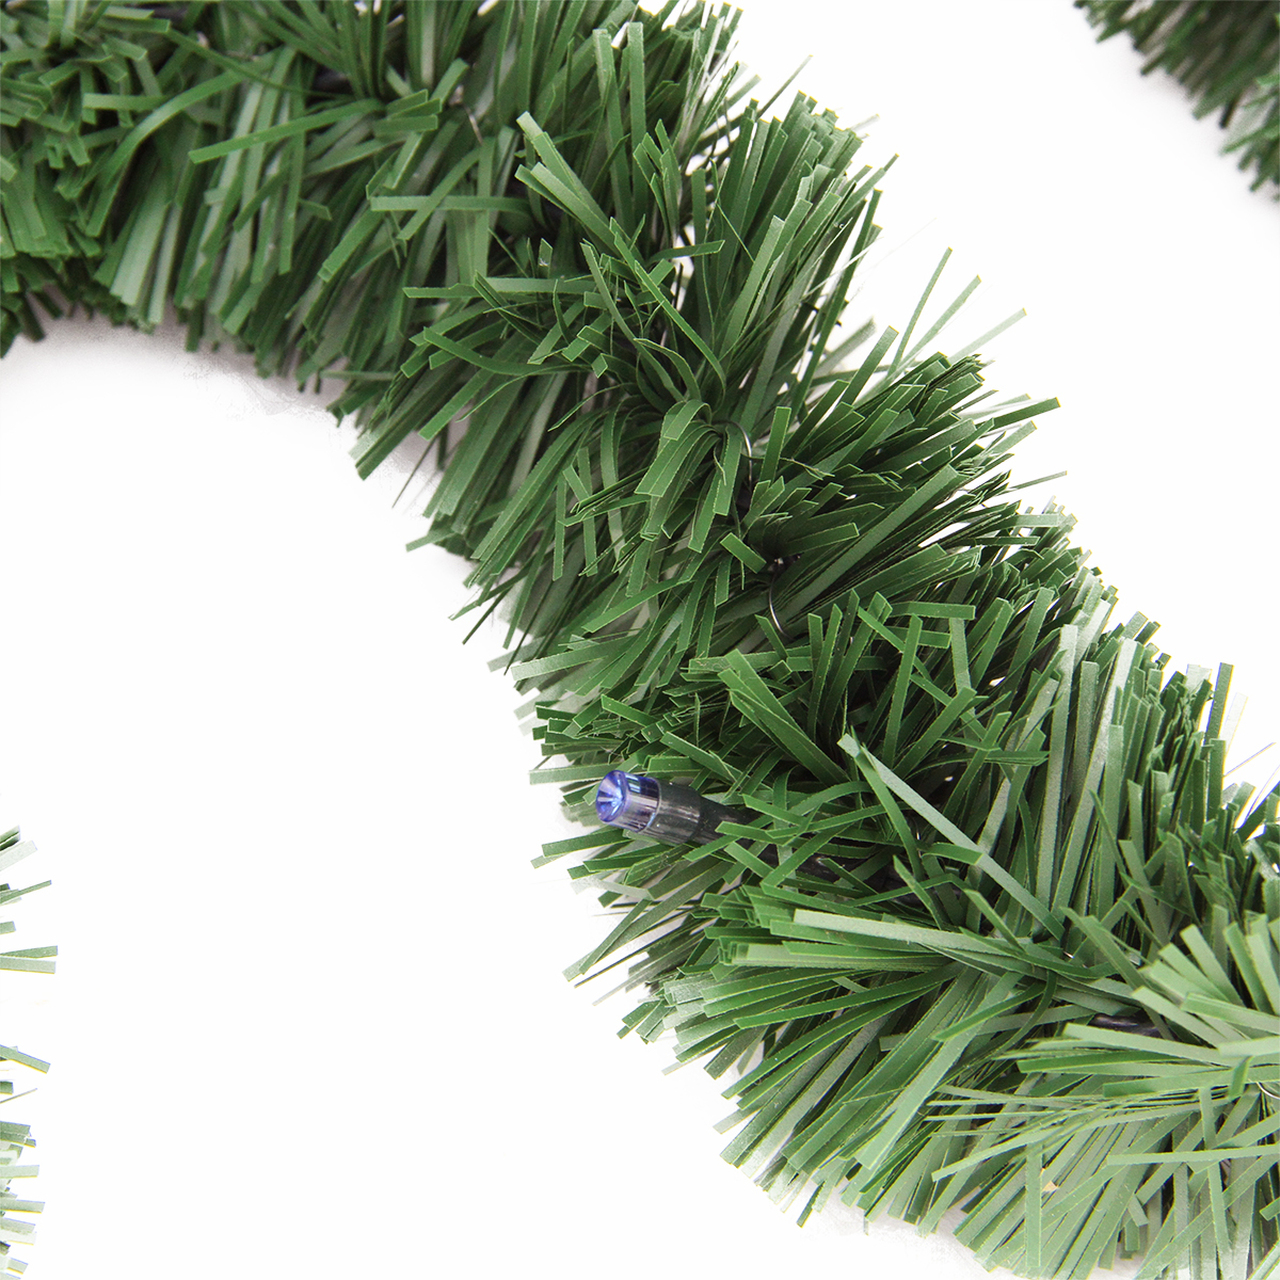 18 pre lit battery operated twinkling green pine artificial christmas garland multi led lights 31524359 - Battery Operated Christmas Garland